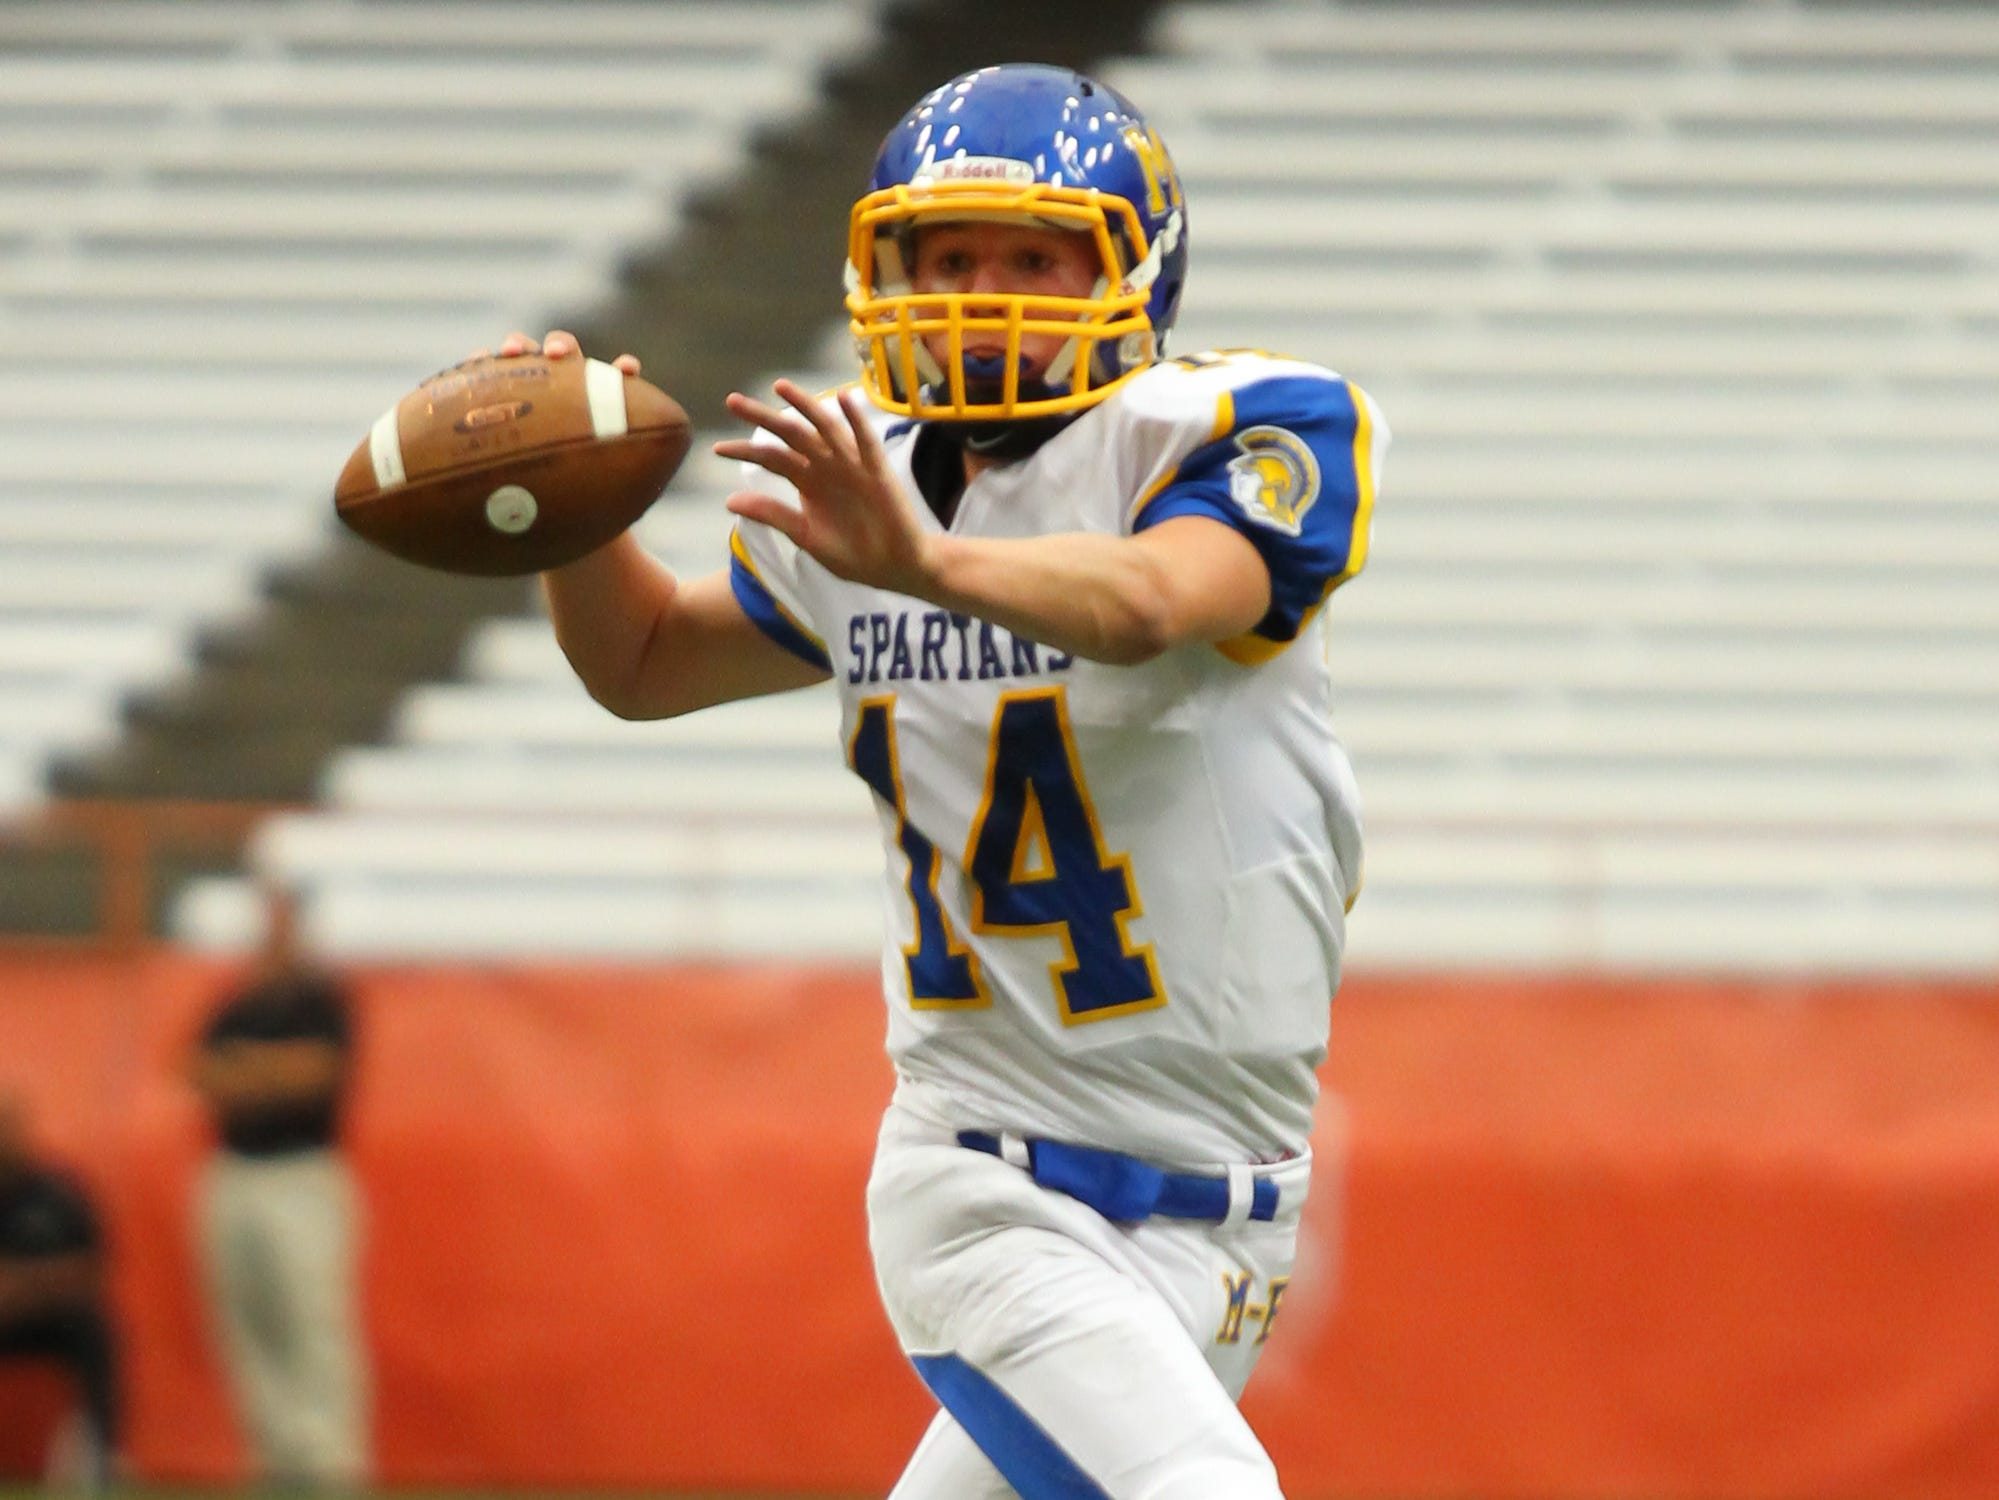 Maine-Endwell's Kyle Balmer replaced starting quarterback Kyle Gallagher, who was sidelined, and kept the Spartans in gear offensively in a 31-7 victory against Nottingham at the Carrier Dome in 2013.